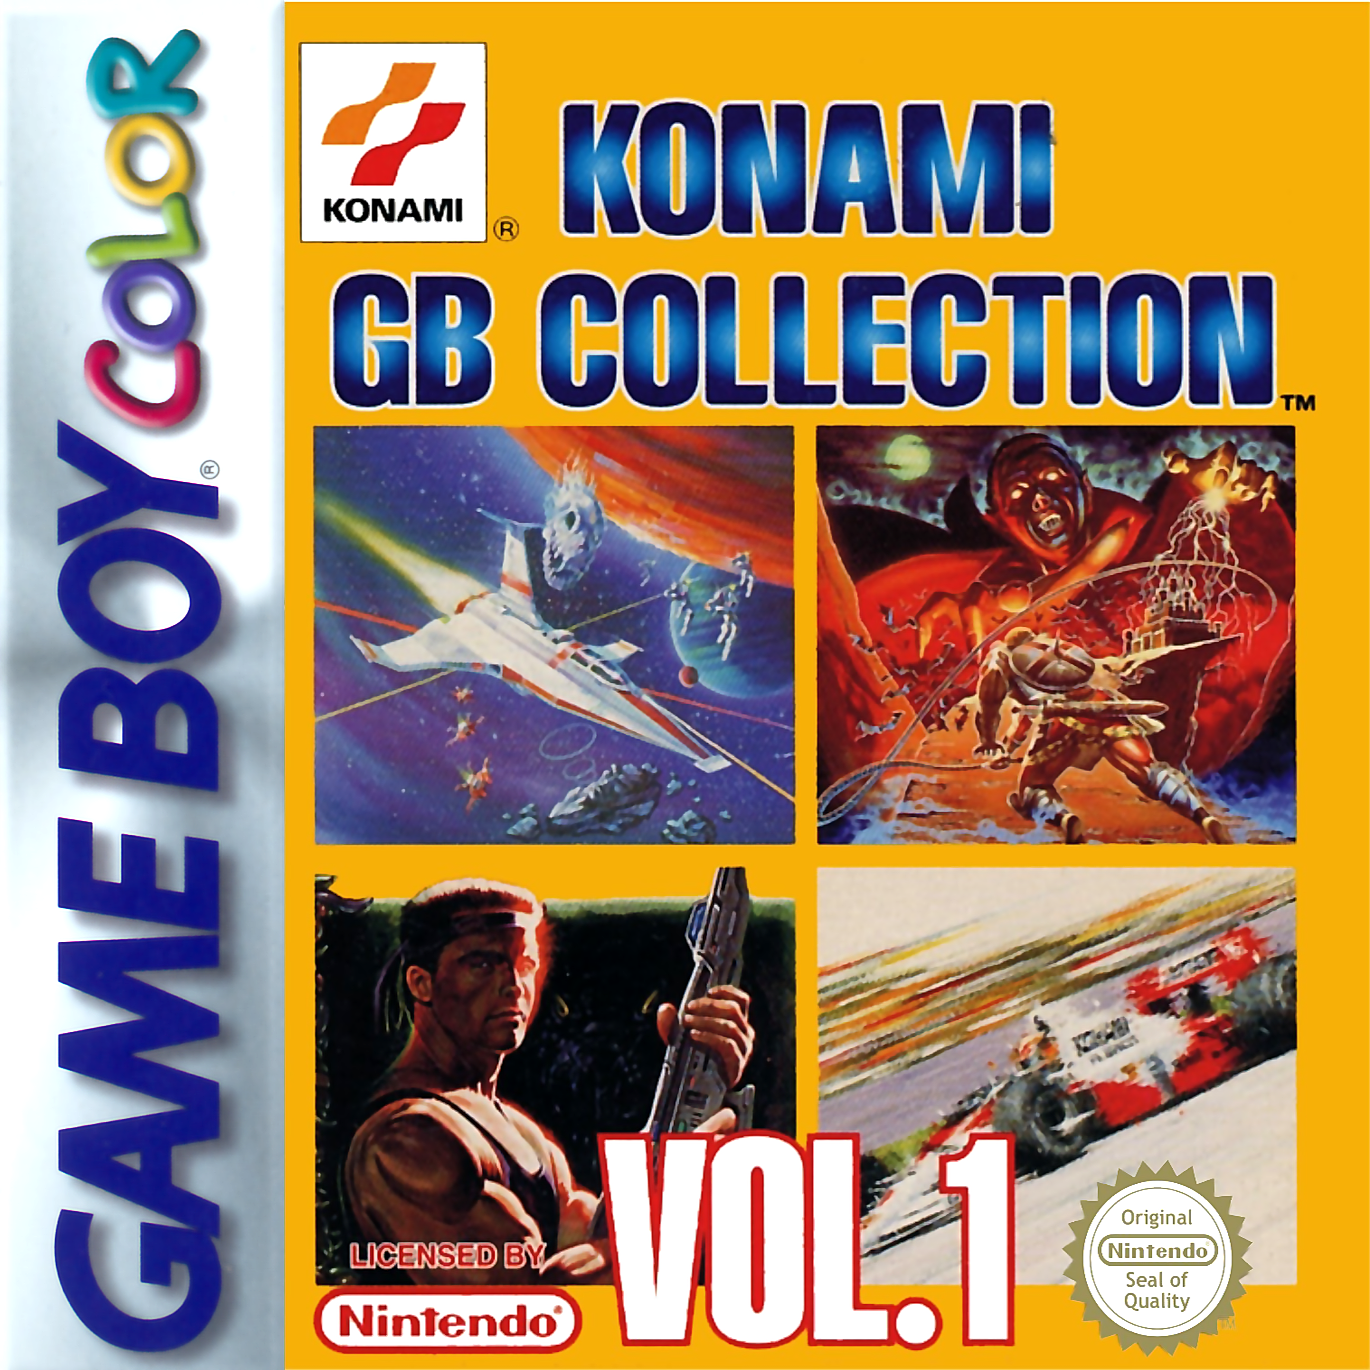 Game boy color online games - Konami Gb Collection Vol 1 Nintendo Game Boy Color Cover Artwork